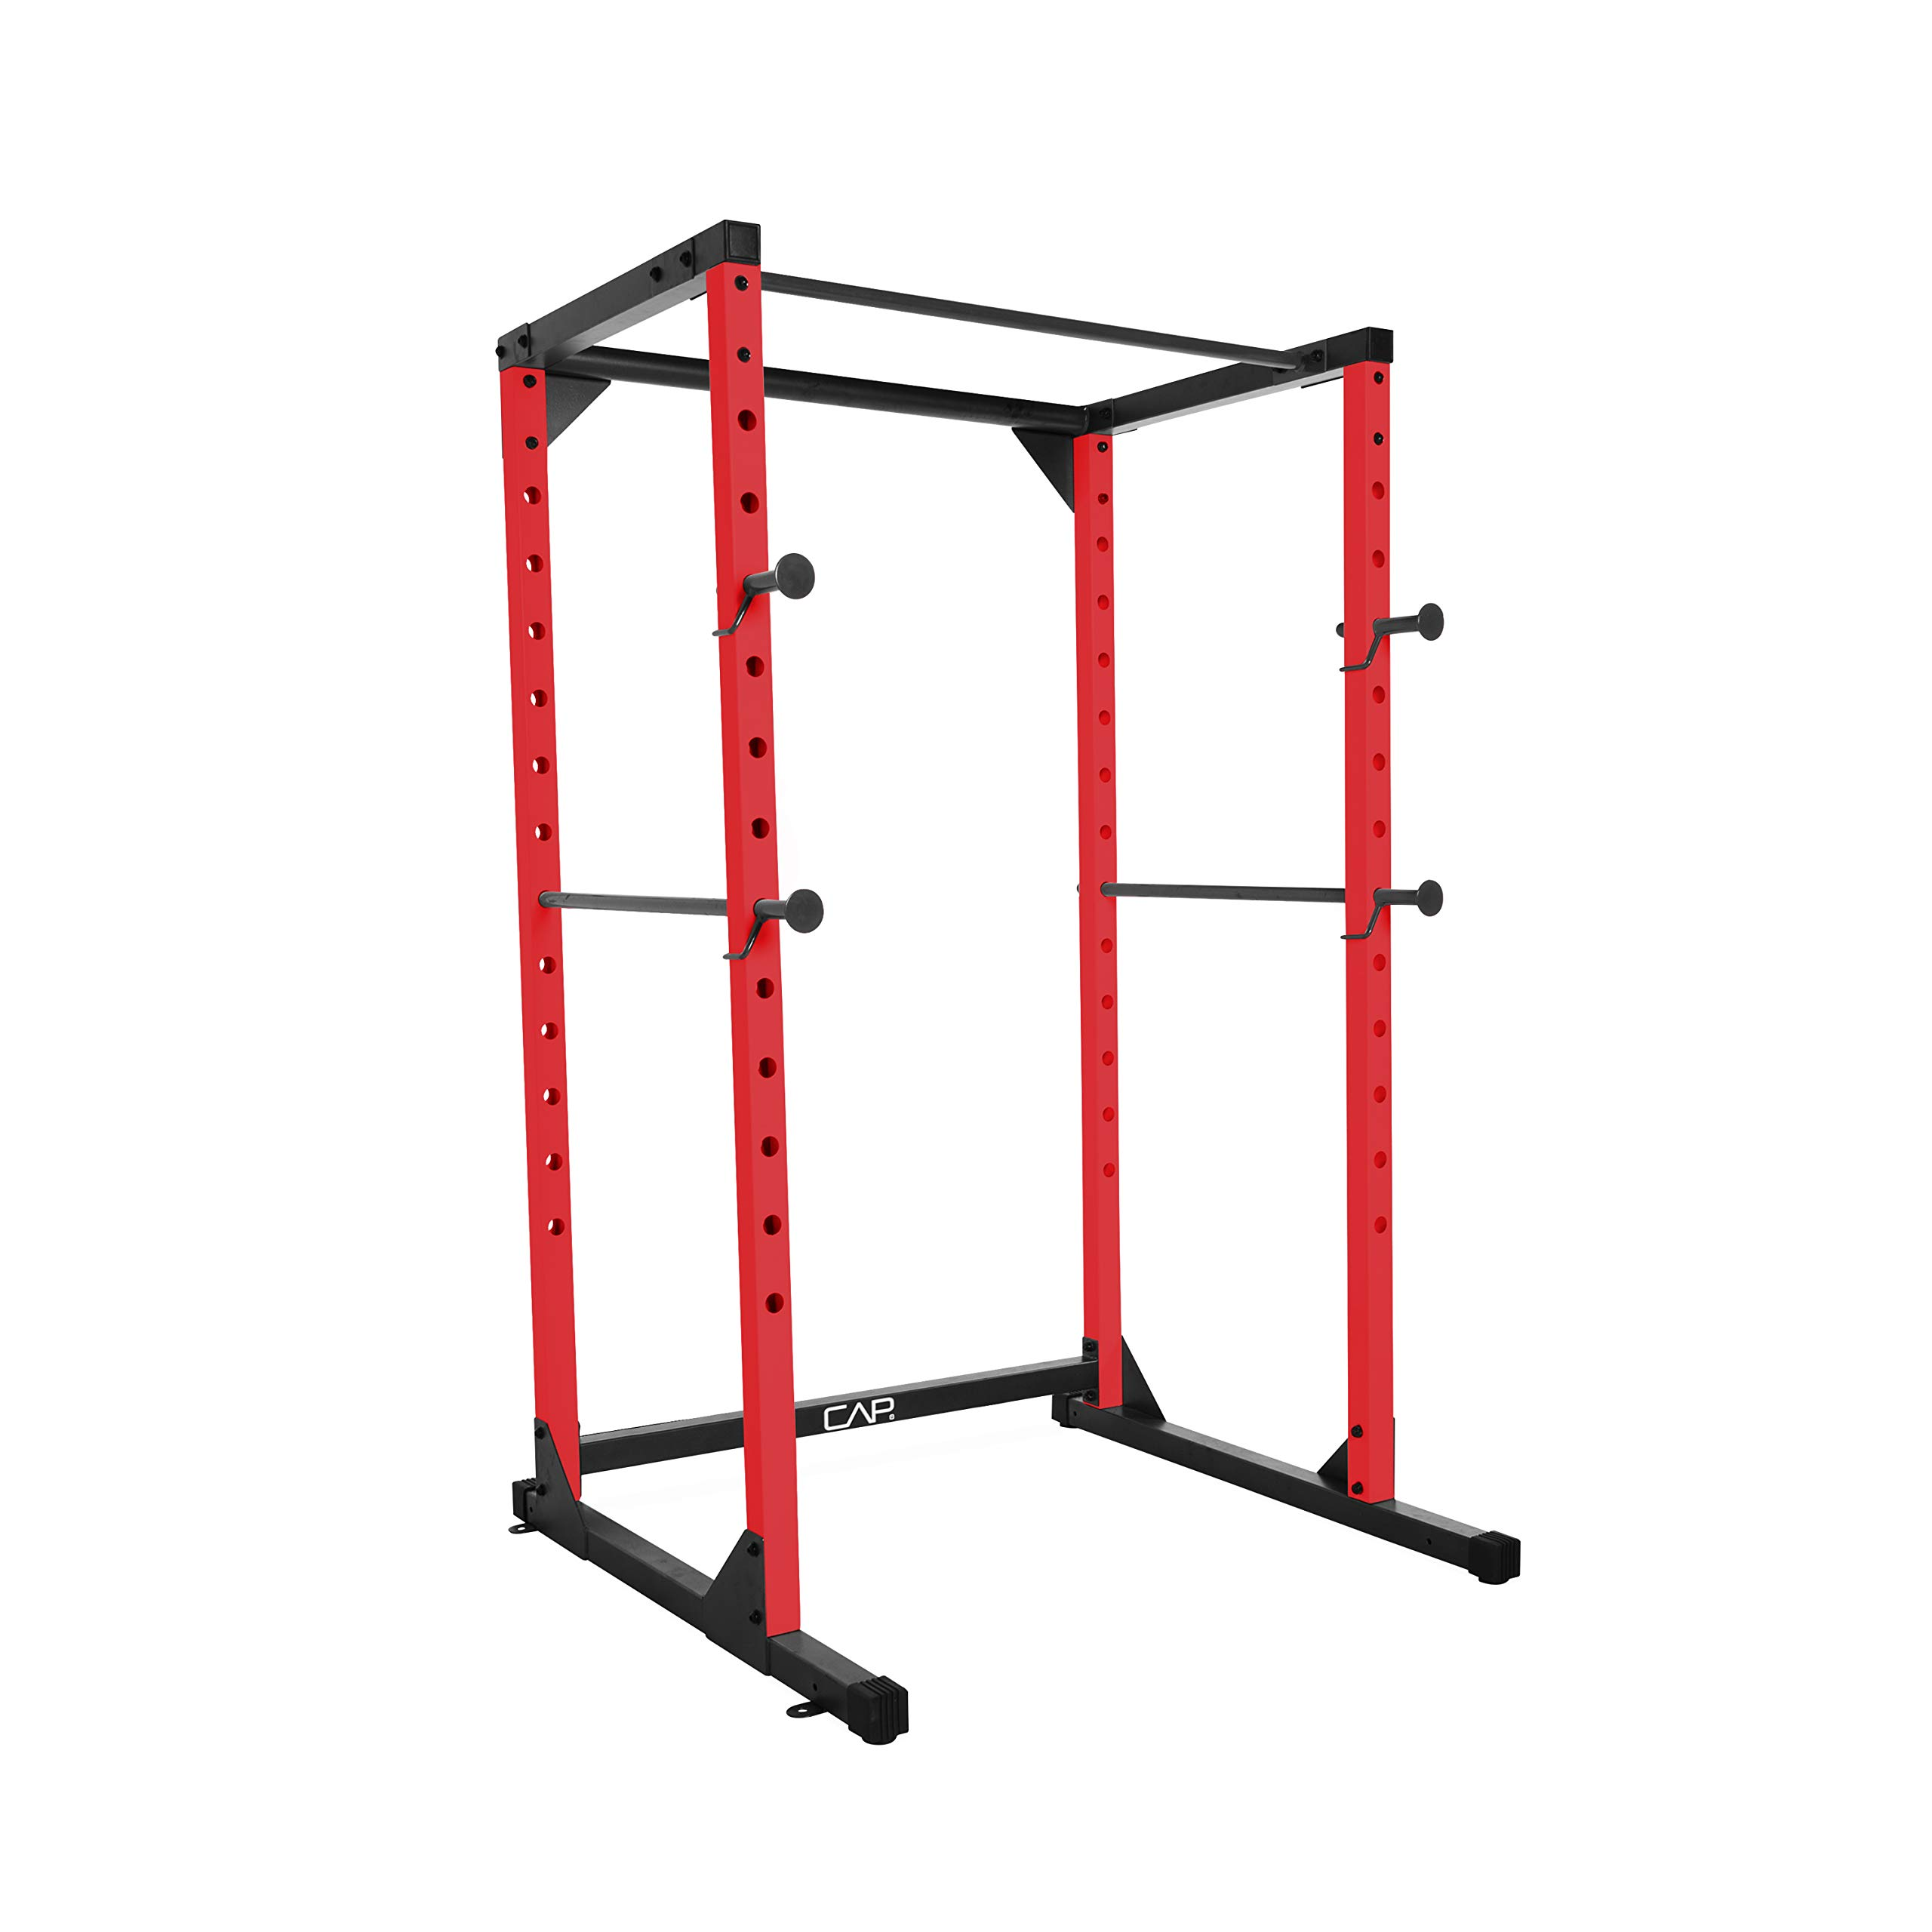 CAP Barbell Full Cage Power Rack, 6-Foot, Red